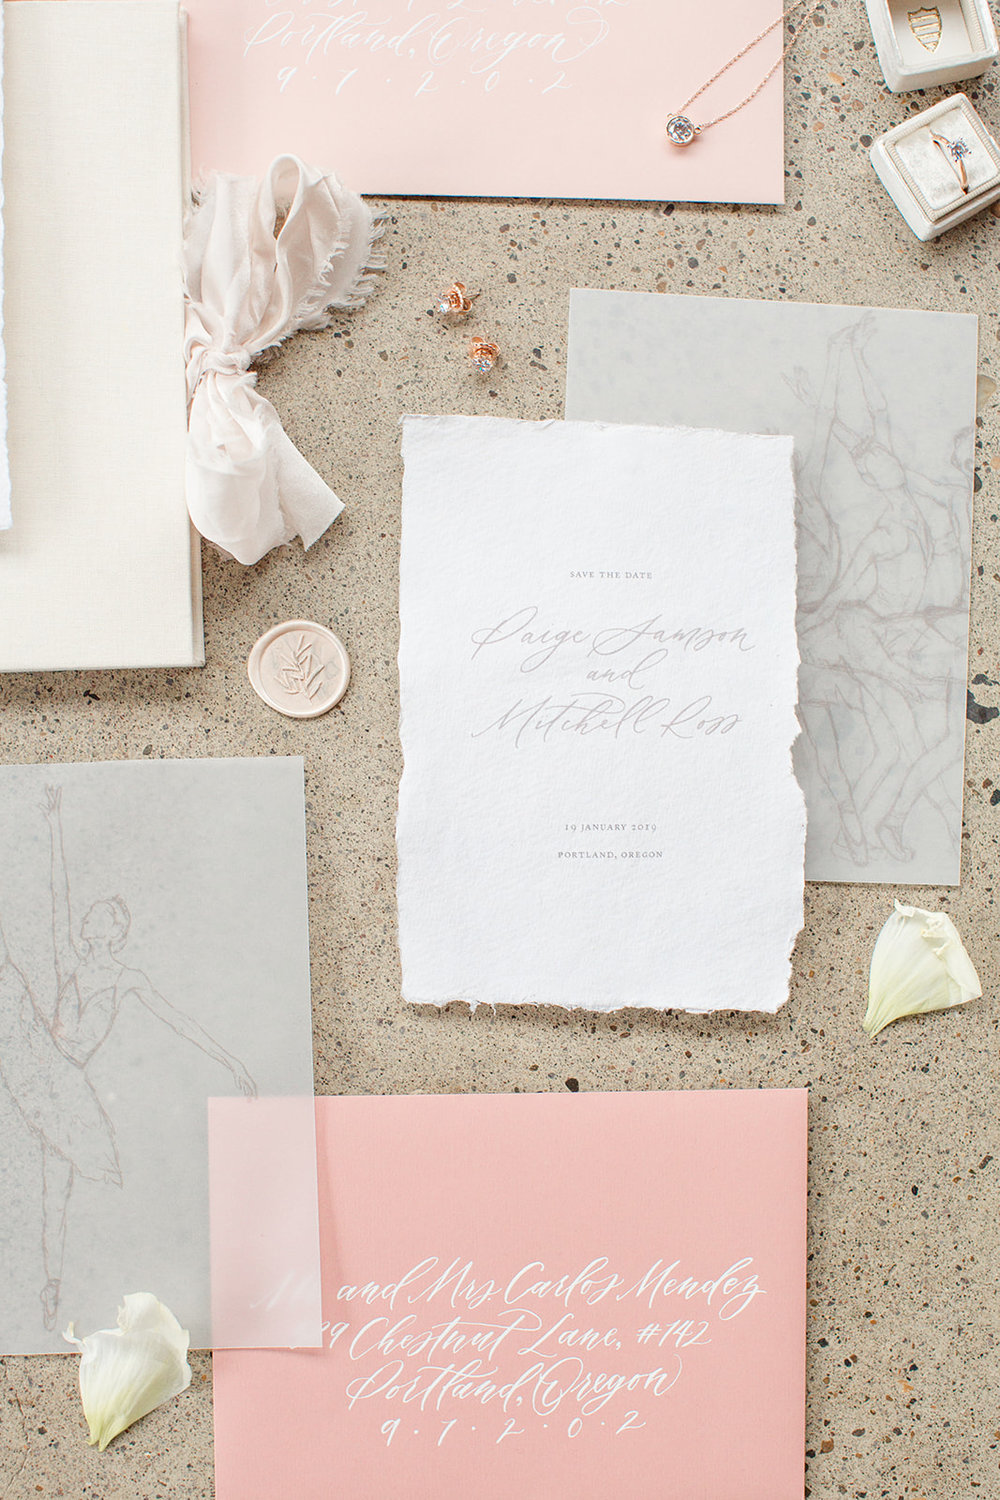 Romantic fine art wedding stationery, inspired by the poise and movement of ballet. Calligraphy and Stationery by Caitlin O'Bryant Design. Photo: Kelby Maria Photography. Planning: Peachy Keen Coordination